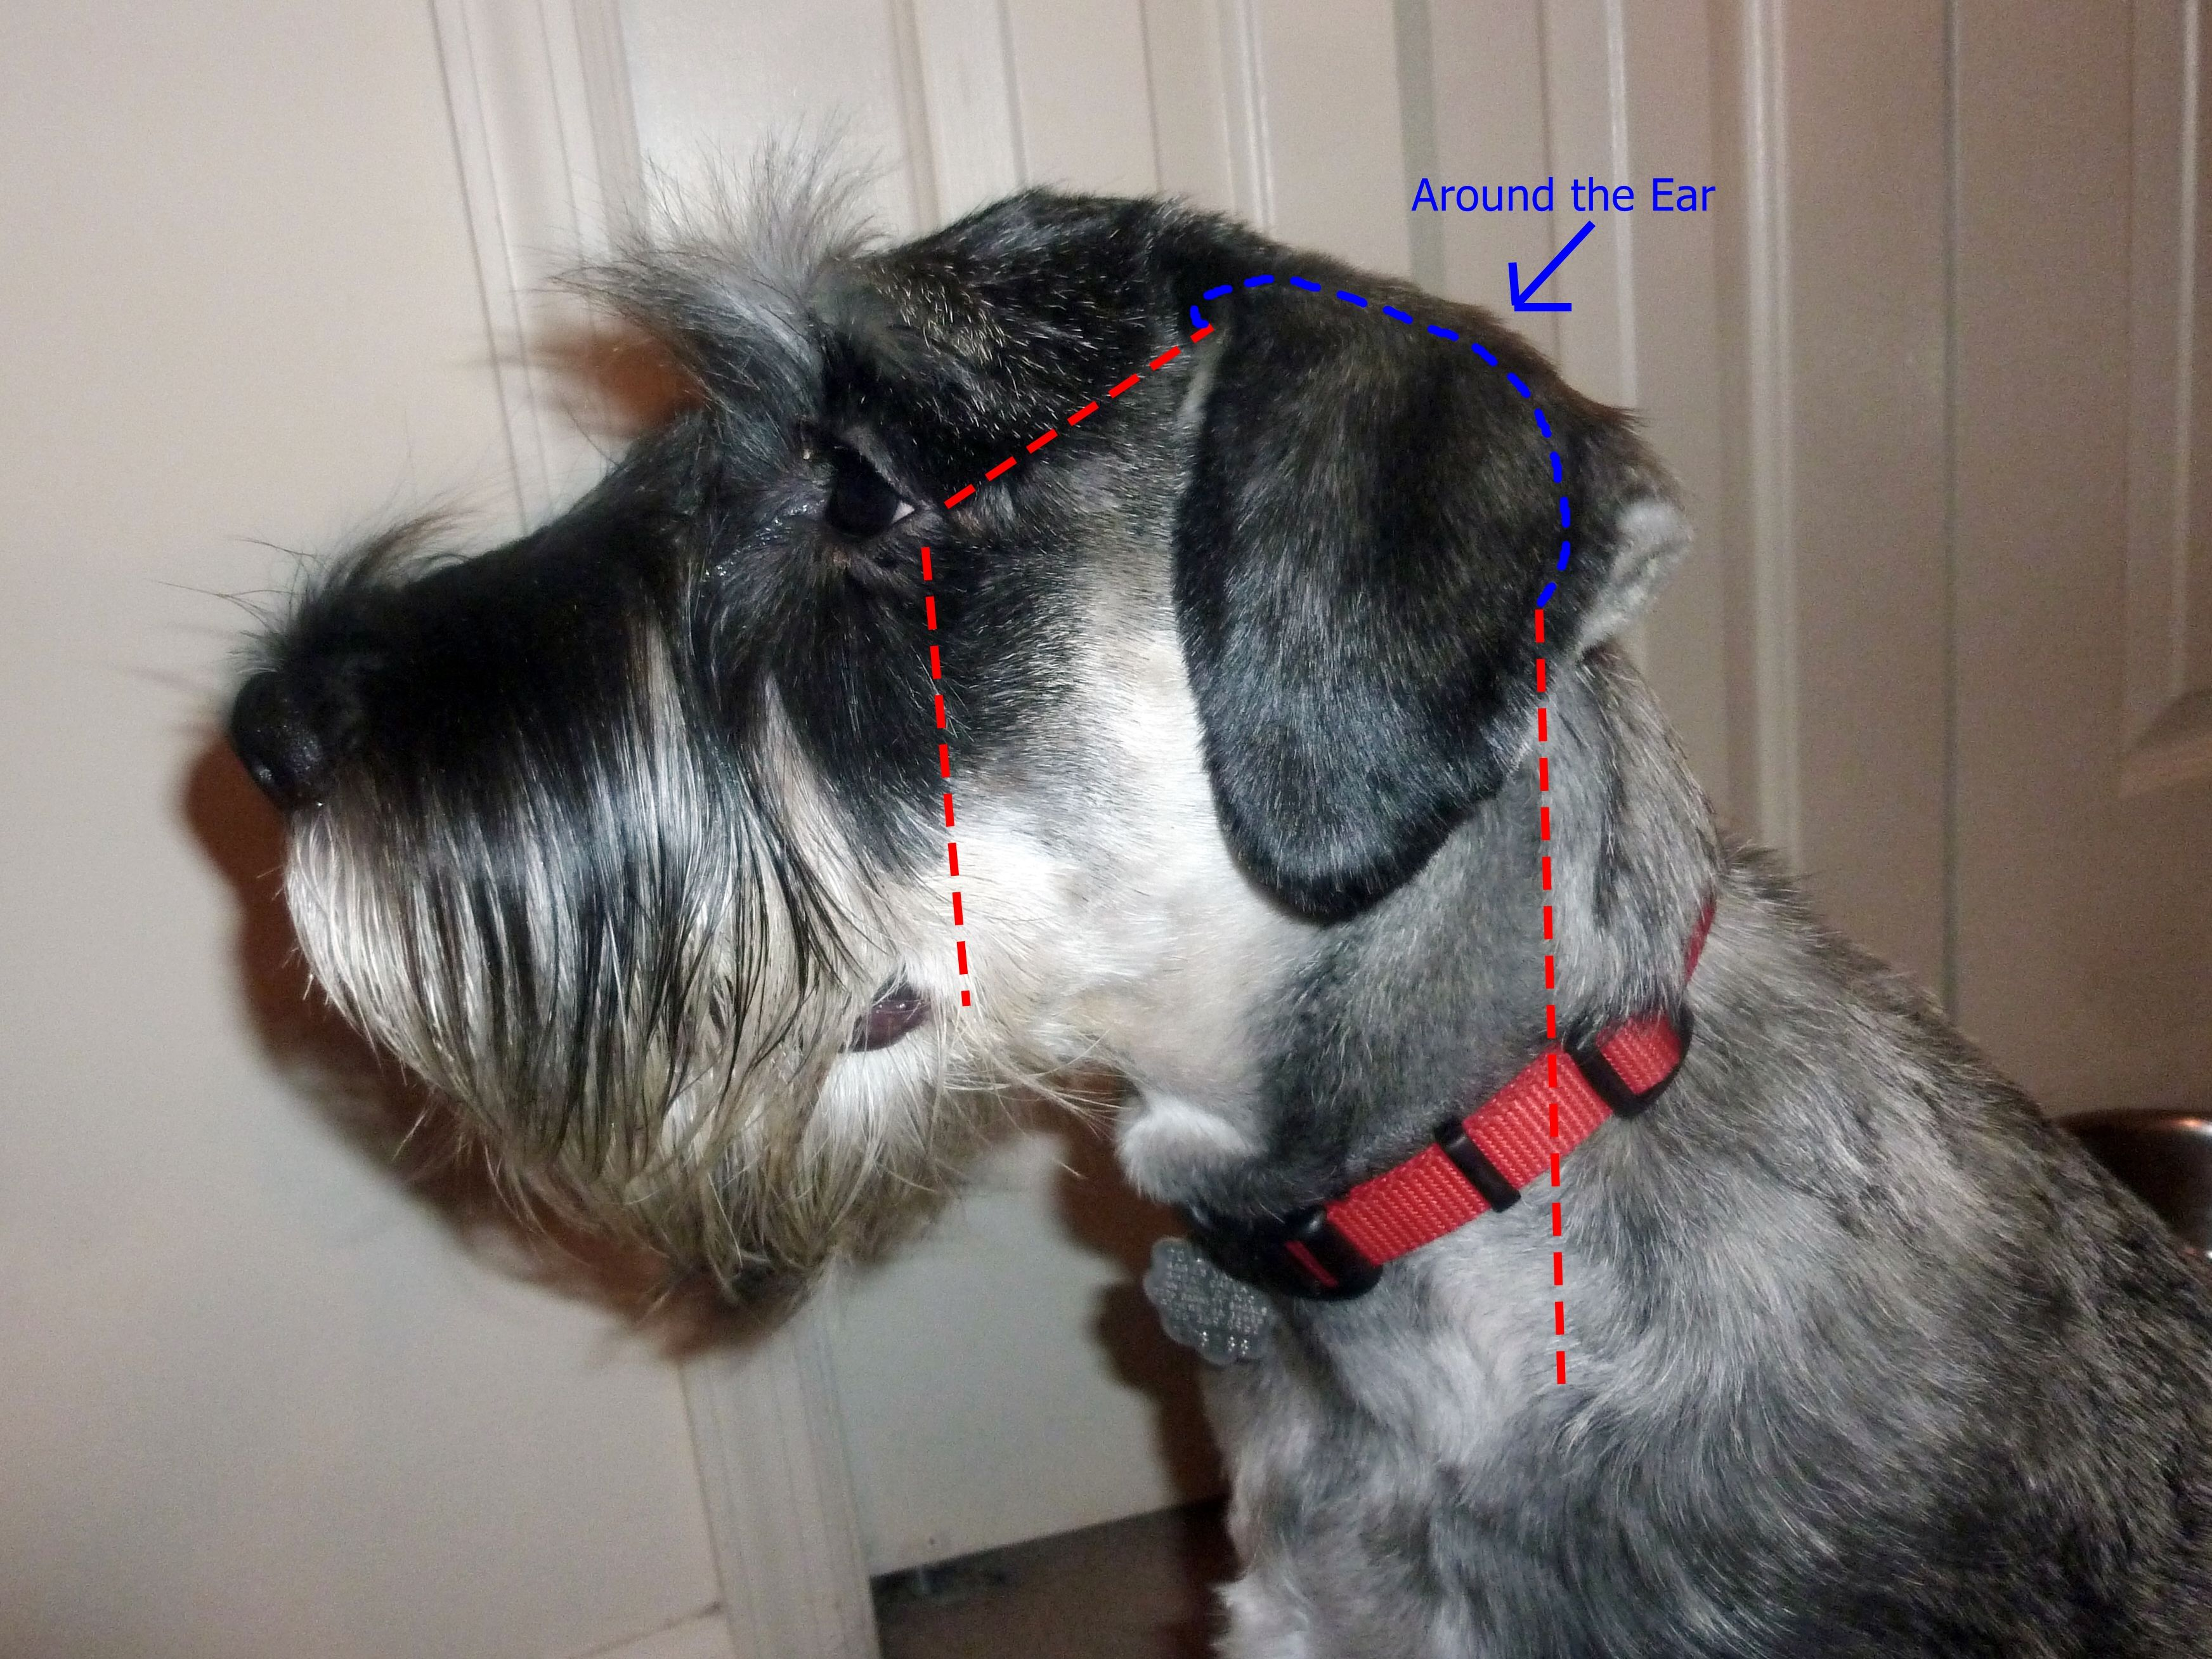 Standard schnauzer grooming -- lines for clipping the face